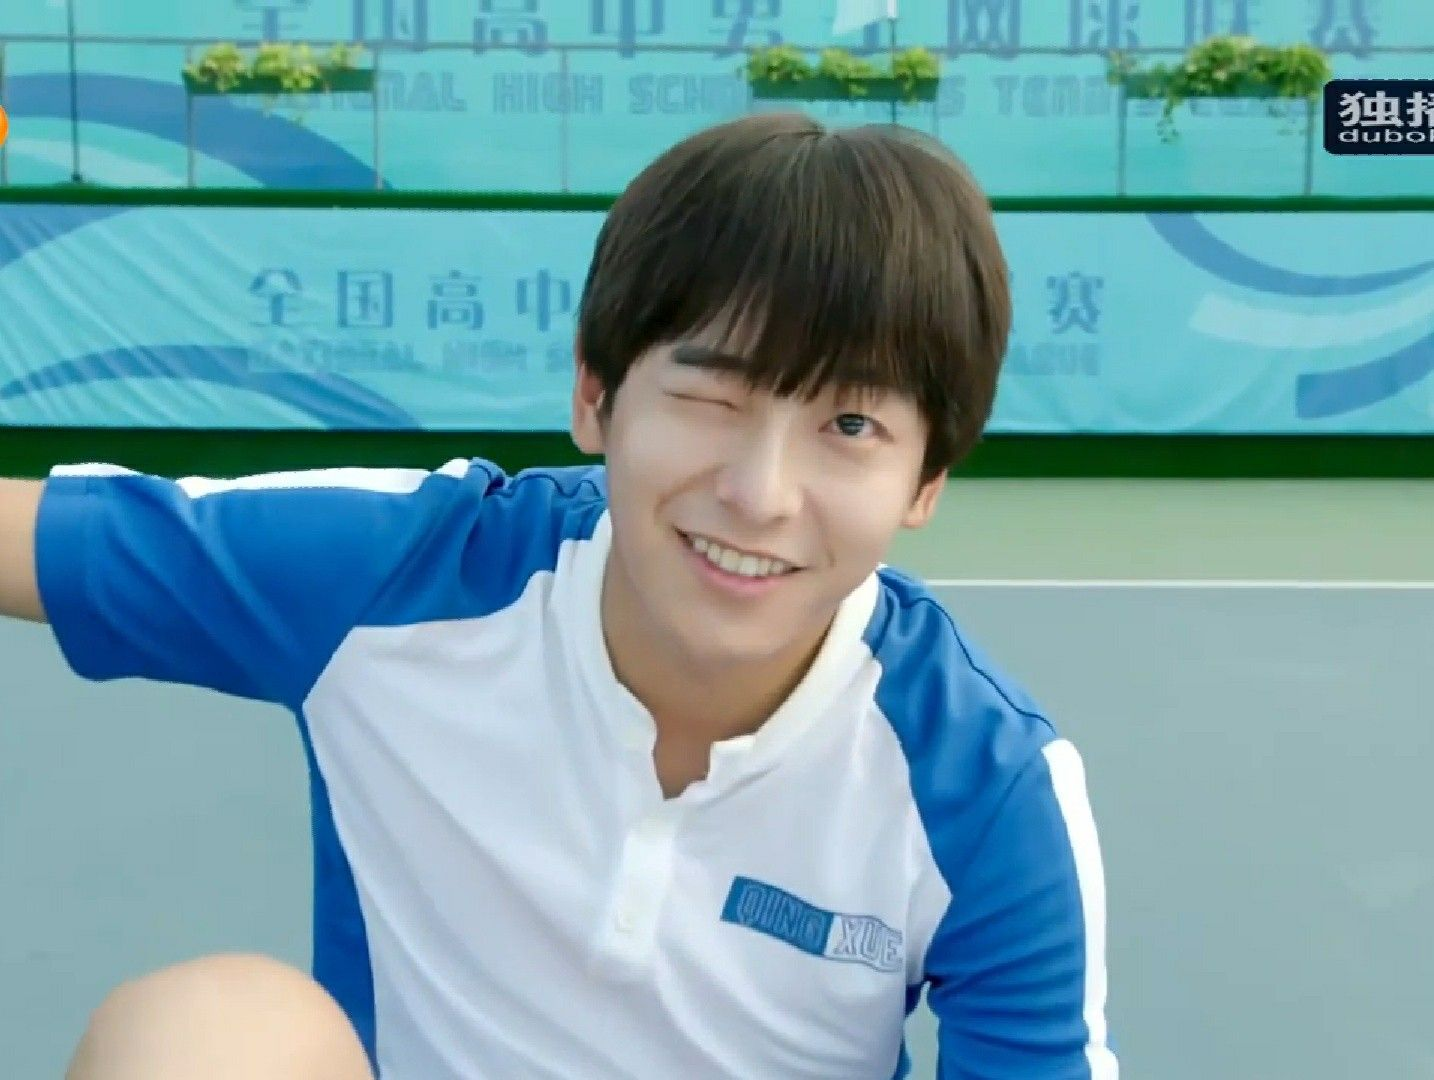 Pin By Karla J On Best Bois In 2020 With Images The Prince Of Tennis Tennis Match Chines Drama